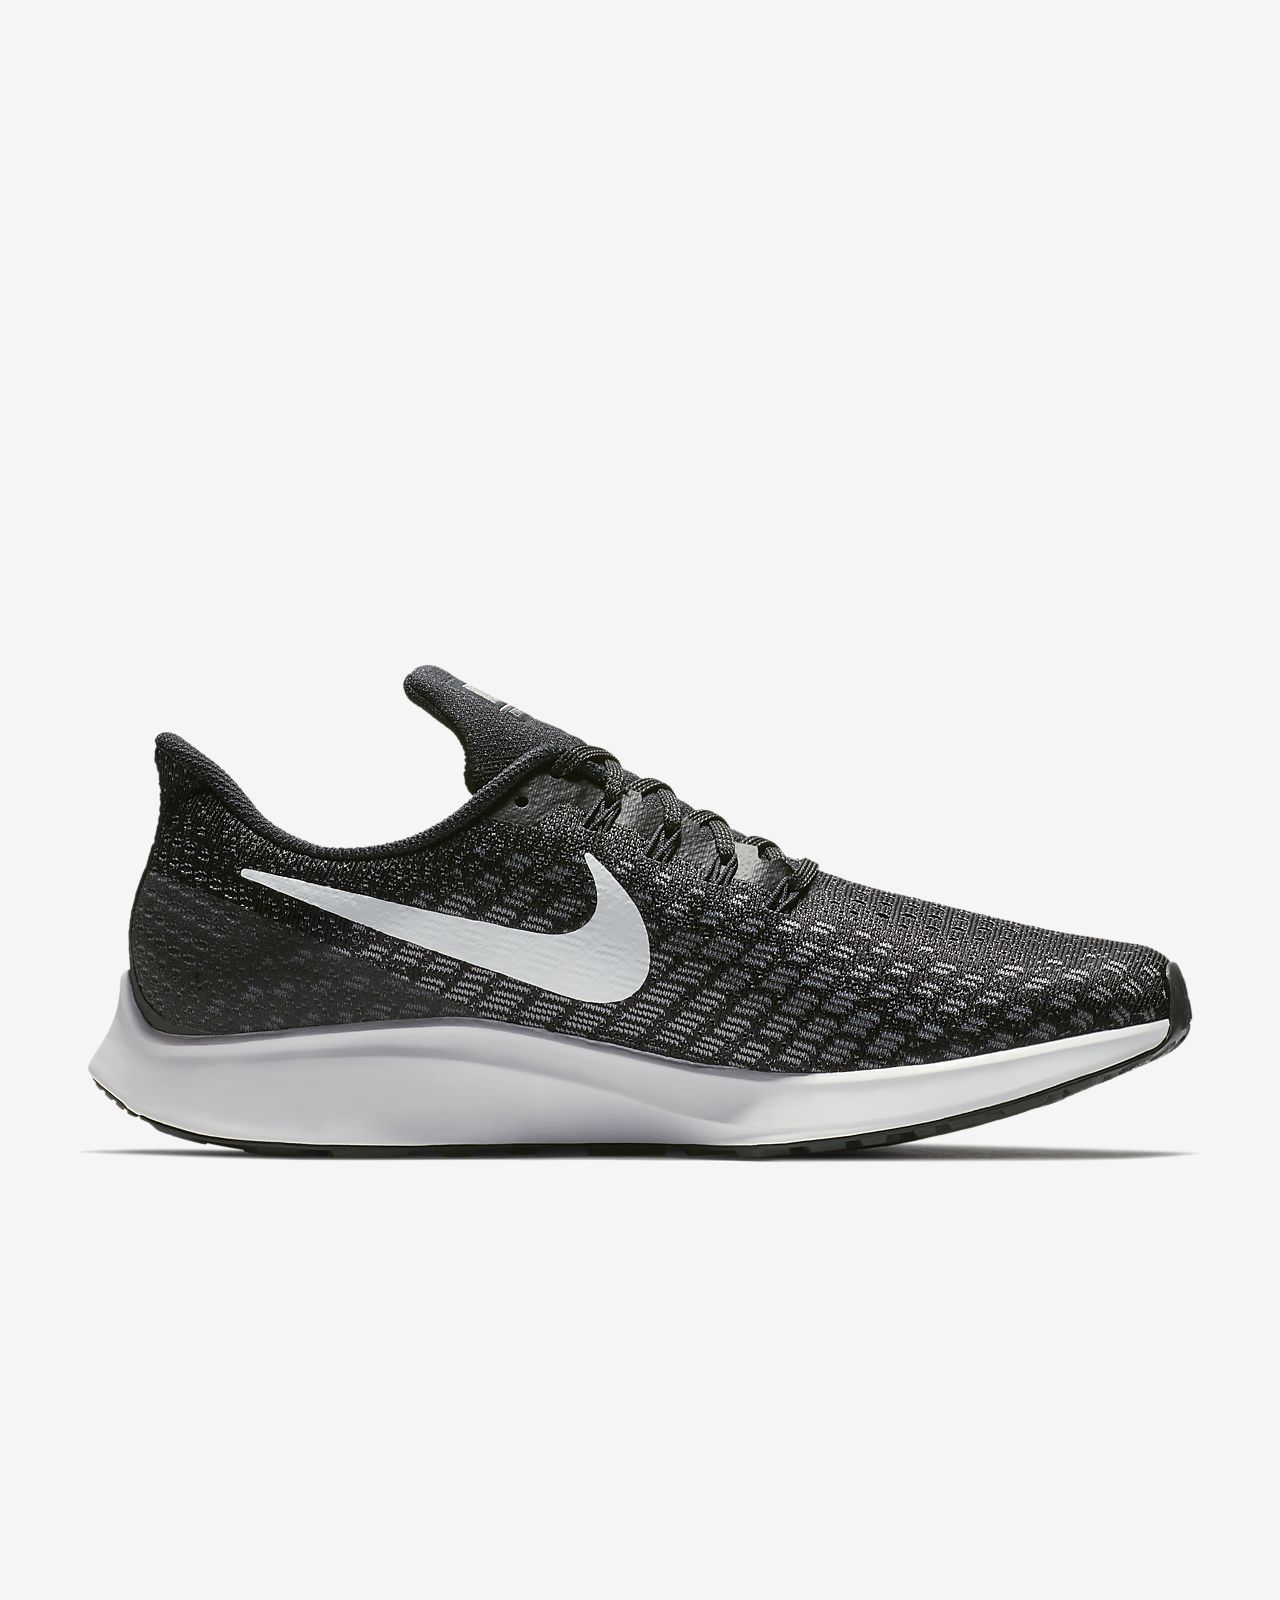 promo code 11abc 195eb ... Chaussure de running Nike Air Zoom Pegasus 35 pour Homme